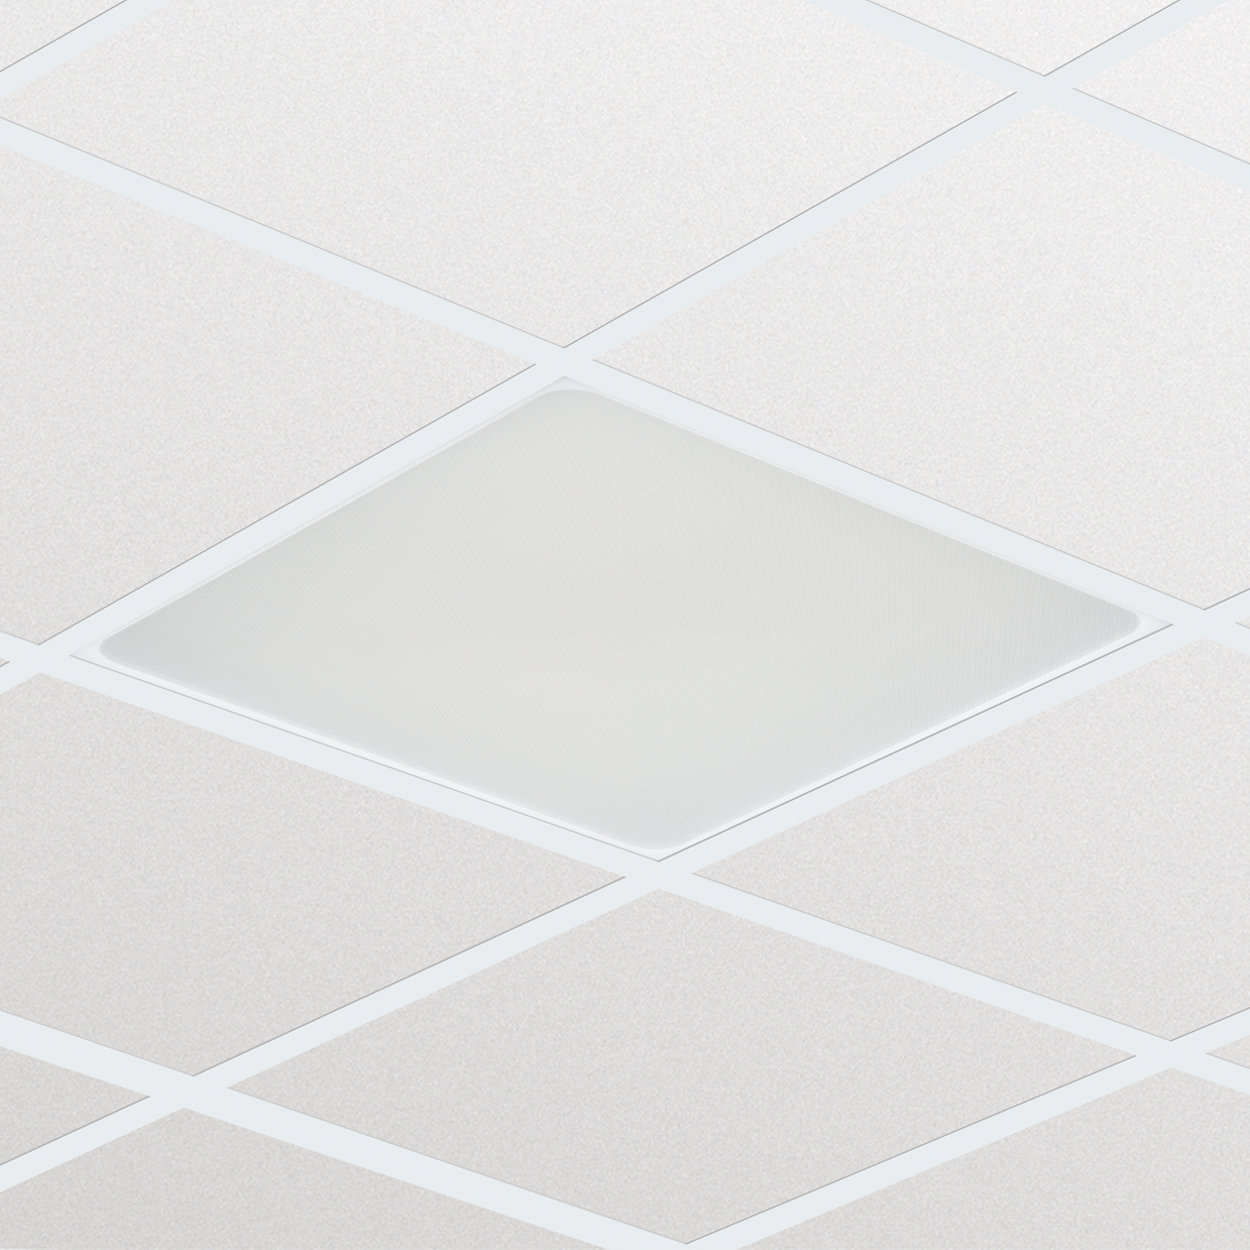 SmartBalance Tunable White recessed – supporting a general feeling of health and well-being